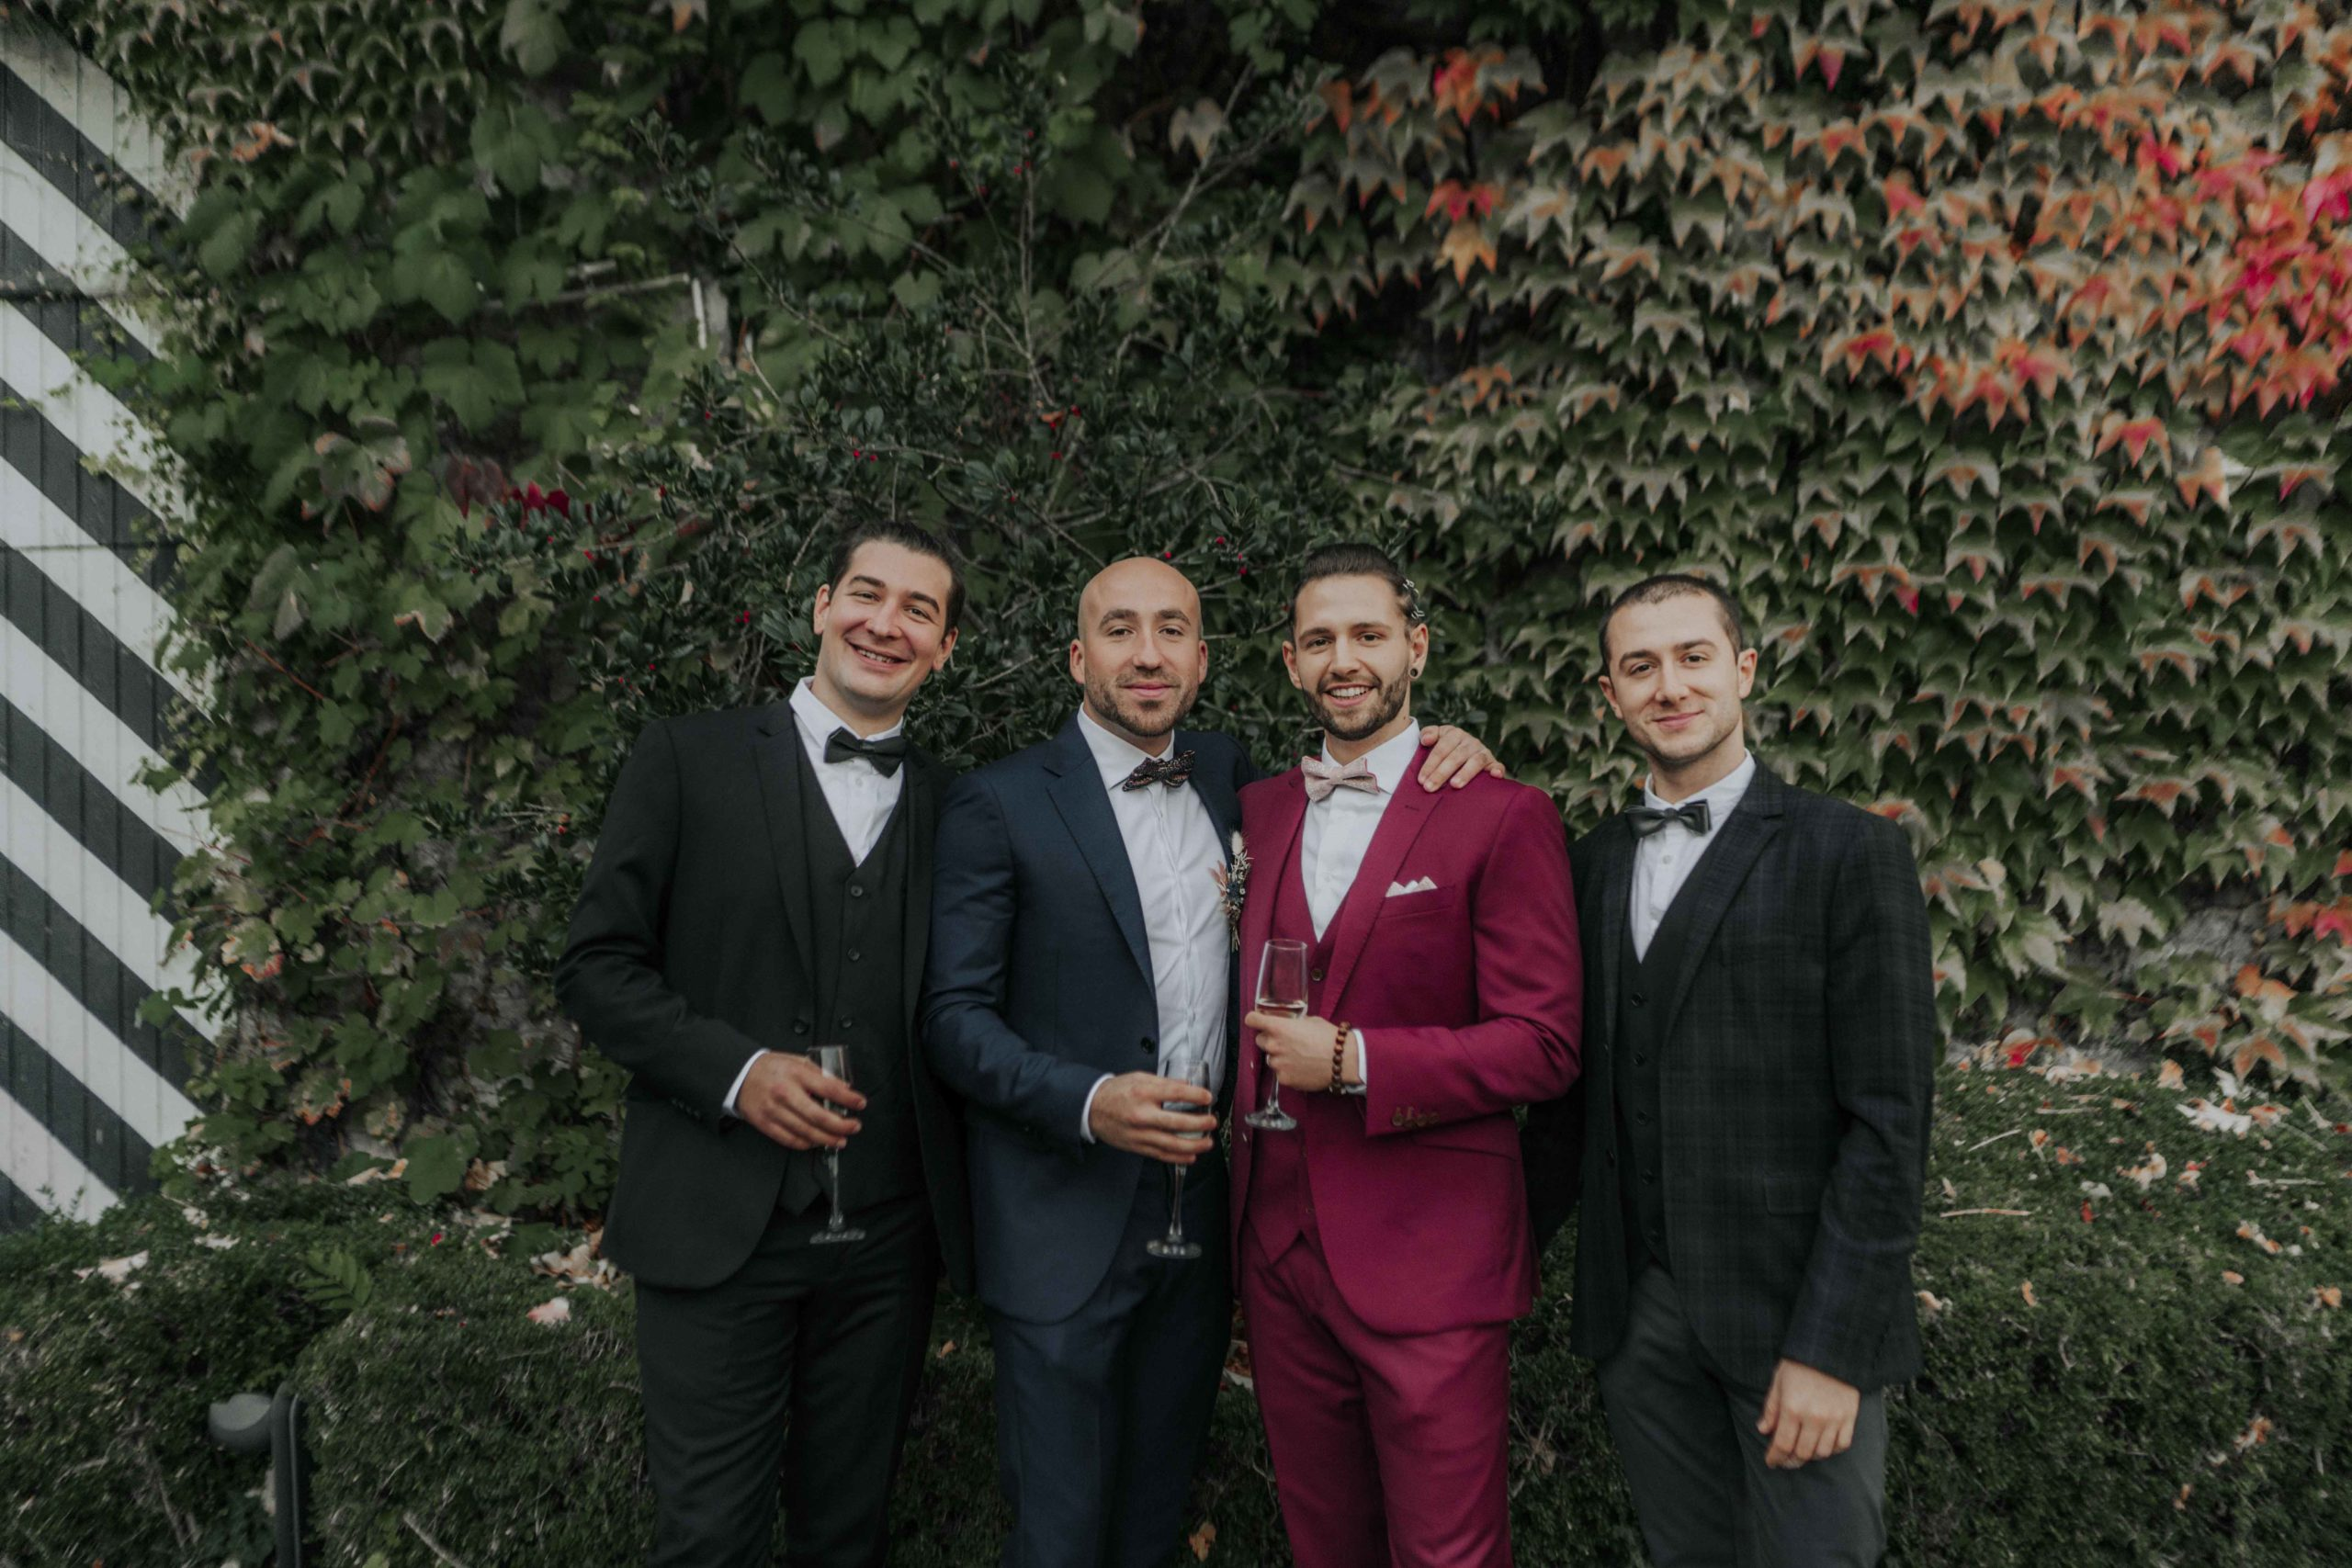 FOREVER_FANNY_MYARD_PHOTOGRAPHY_LN_MARIAGE-443